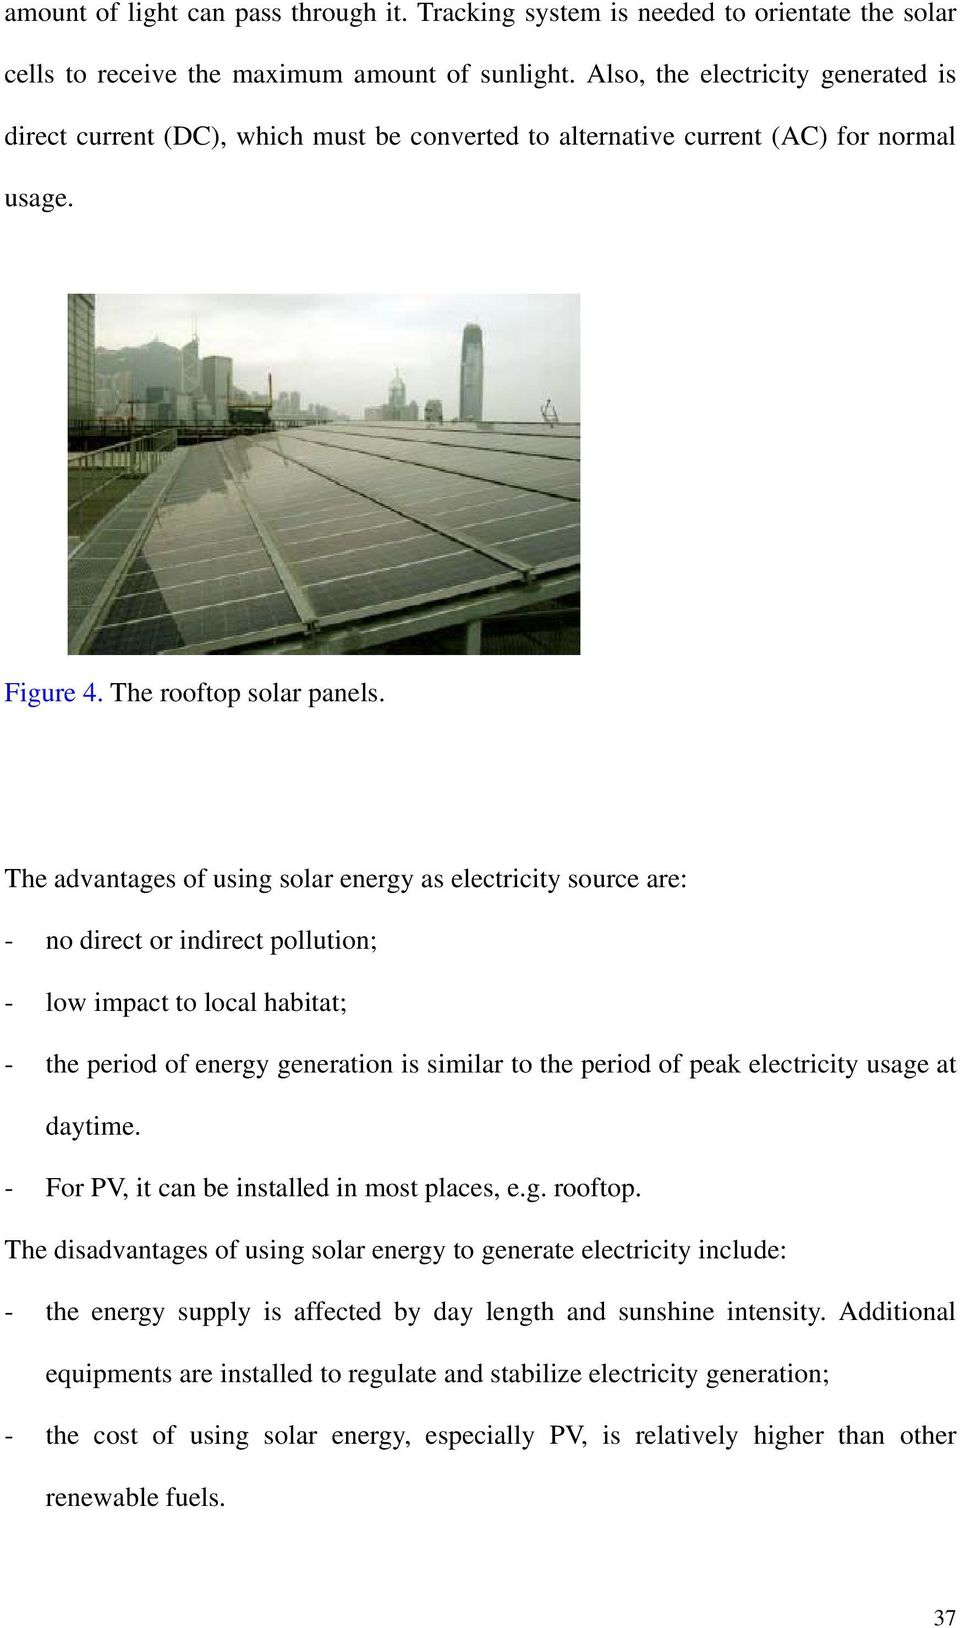 The advantages of using solar energy as electricity source are: - no direct or indirect pollution; - low impact to local habitat; - the period of energy generation is similar to the period of peak